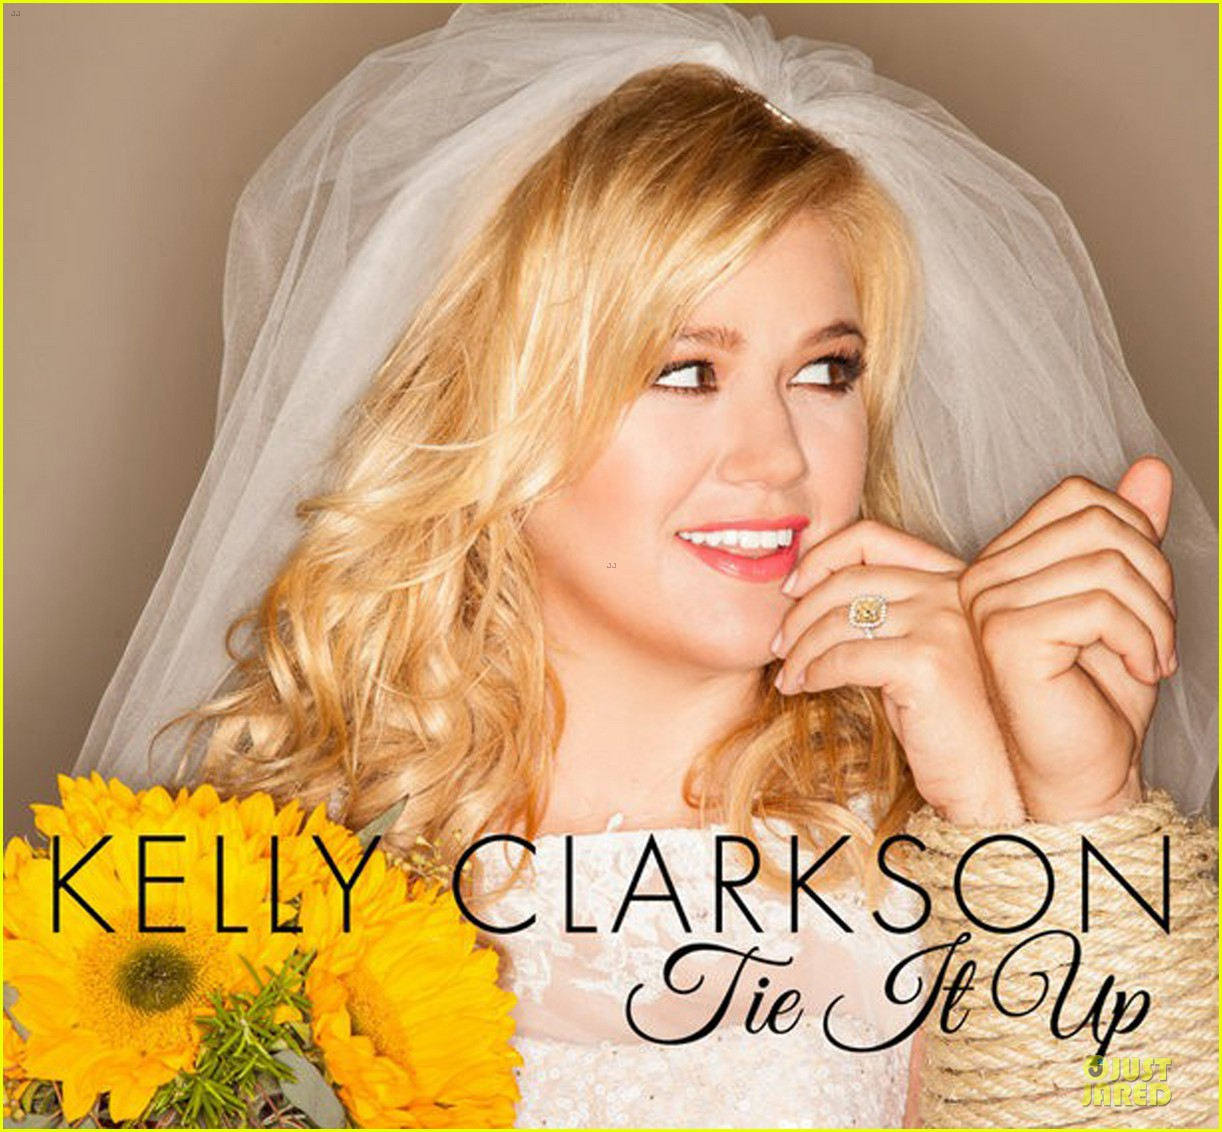 kelly clarkson tie it up cover art for new single